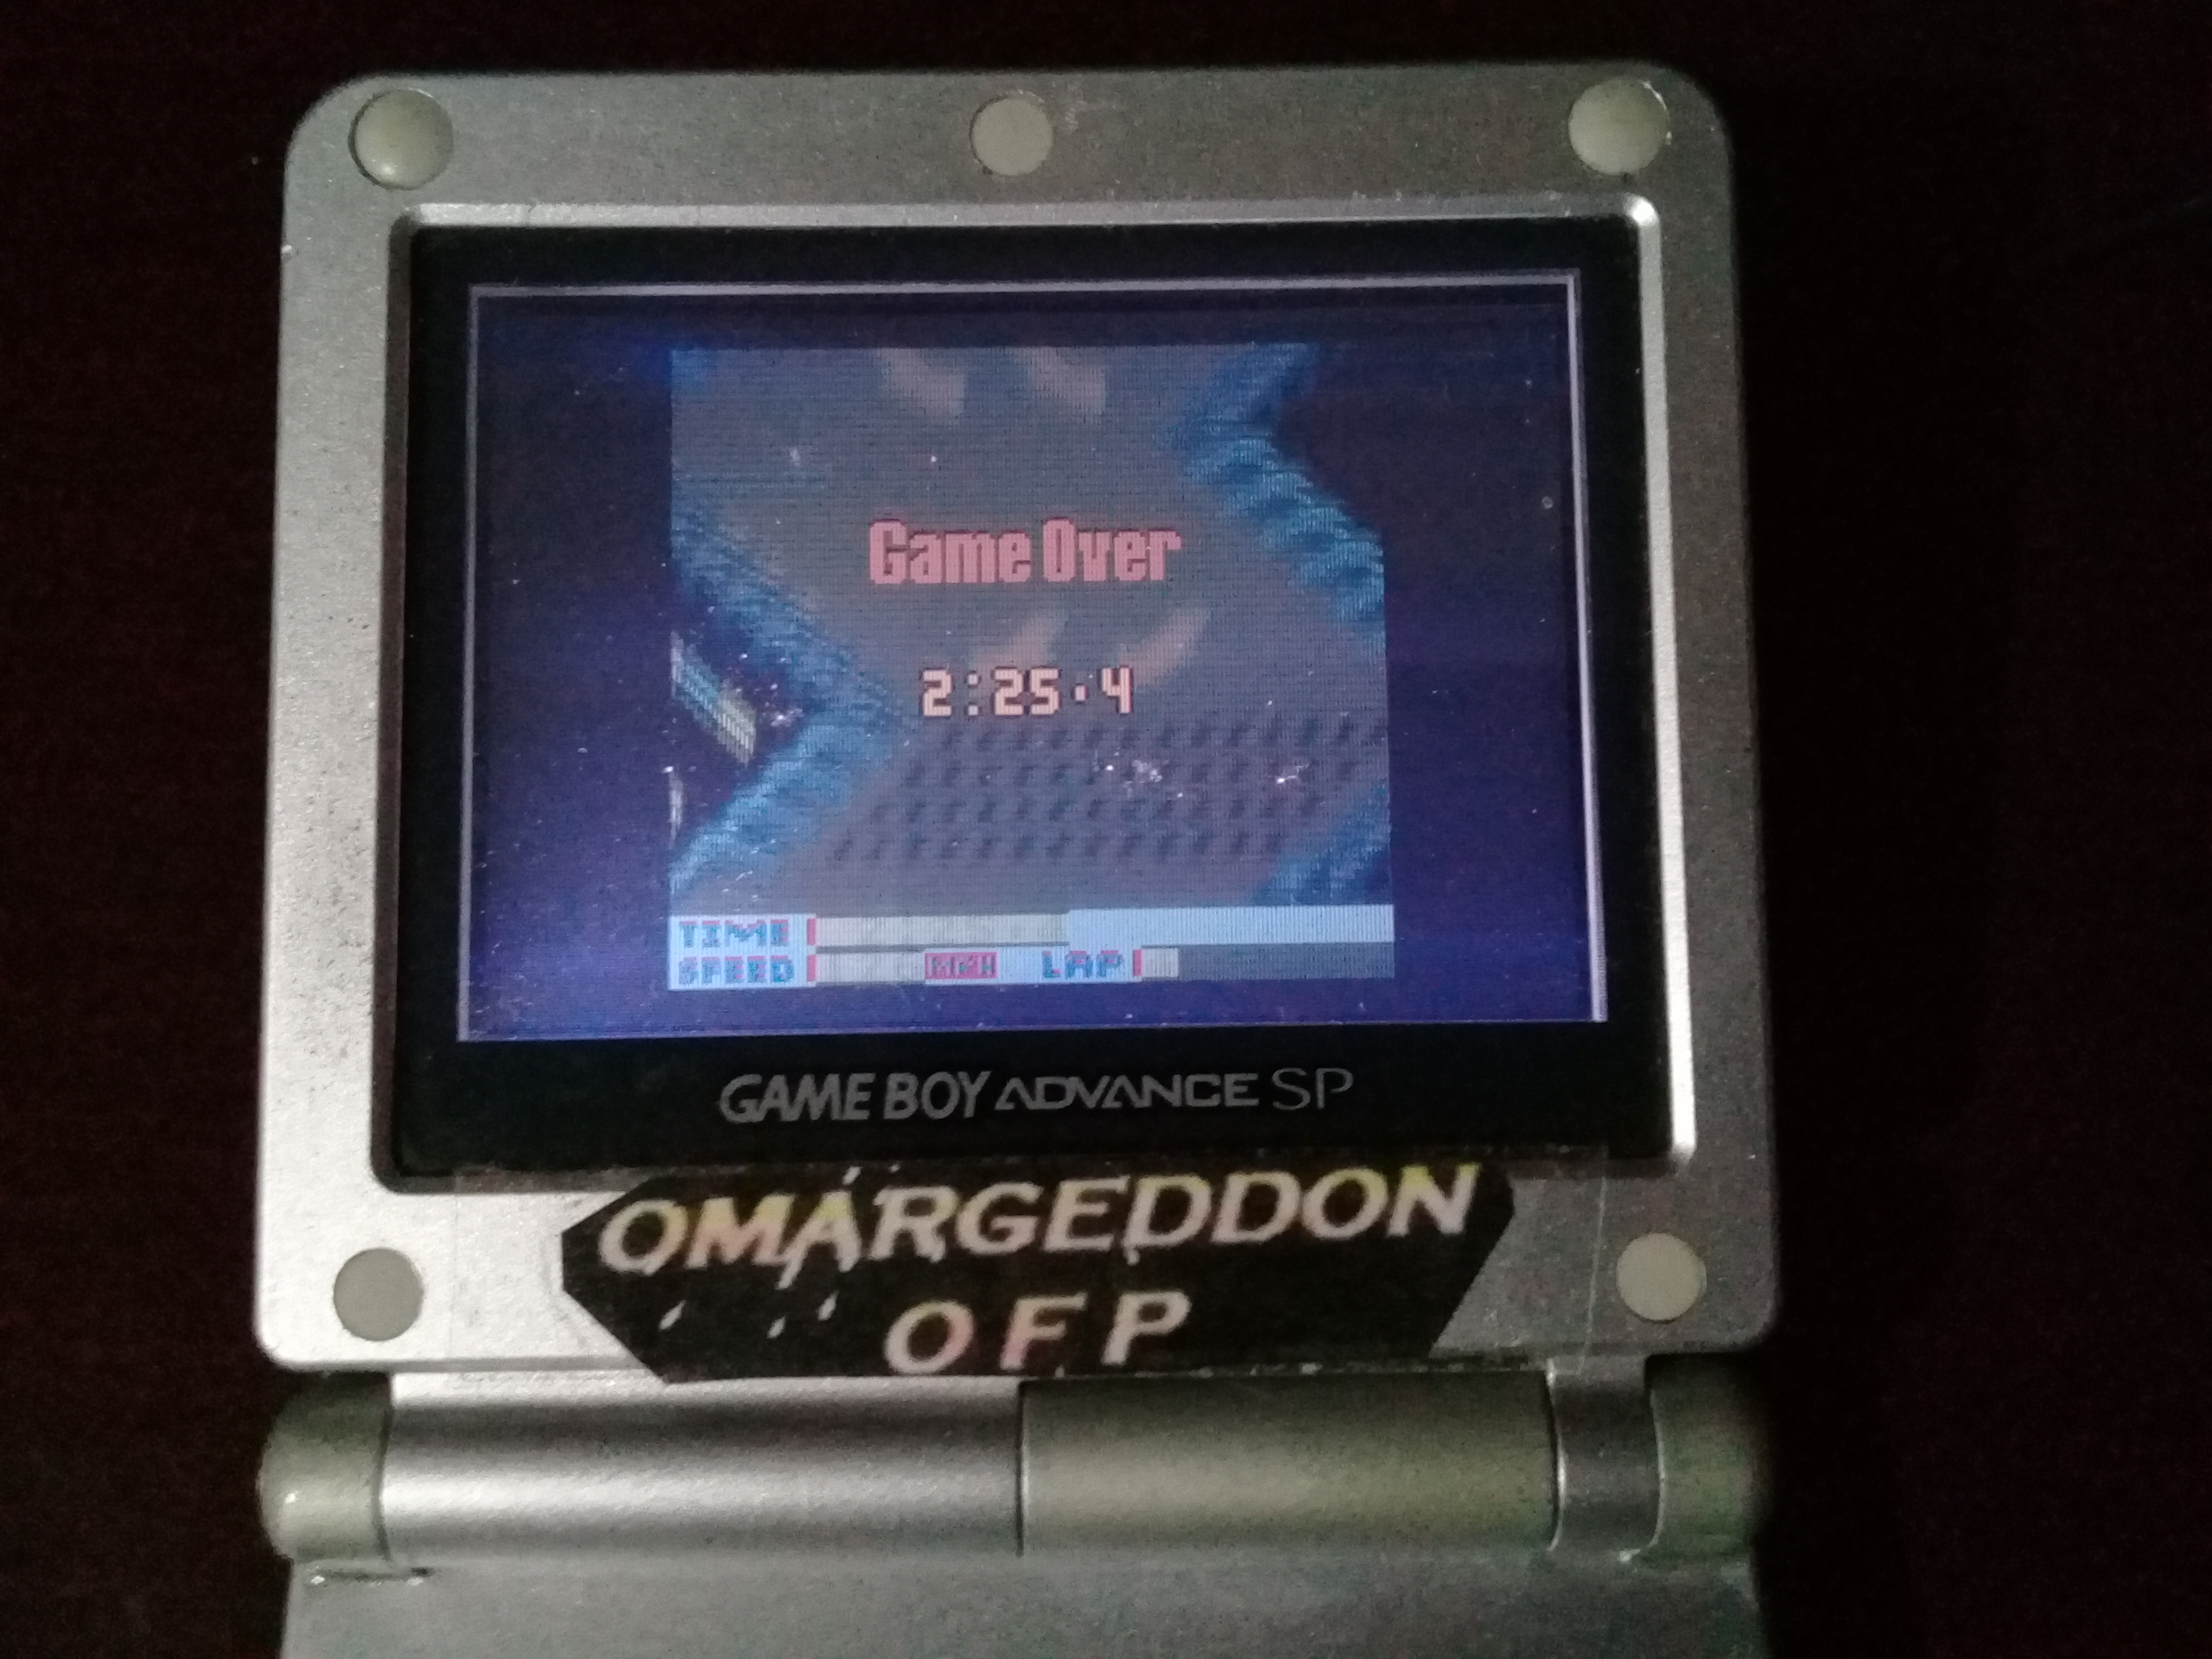 omargeddon: San Francisco Rush 2049: Time Trial [Track 4] (Game Boy Color) 0:02:25.4 points on 2019-03-01 10:21:30